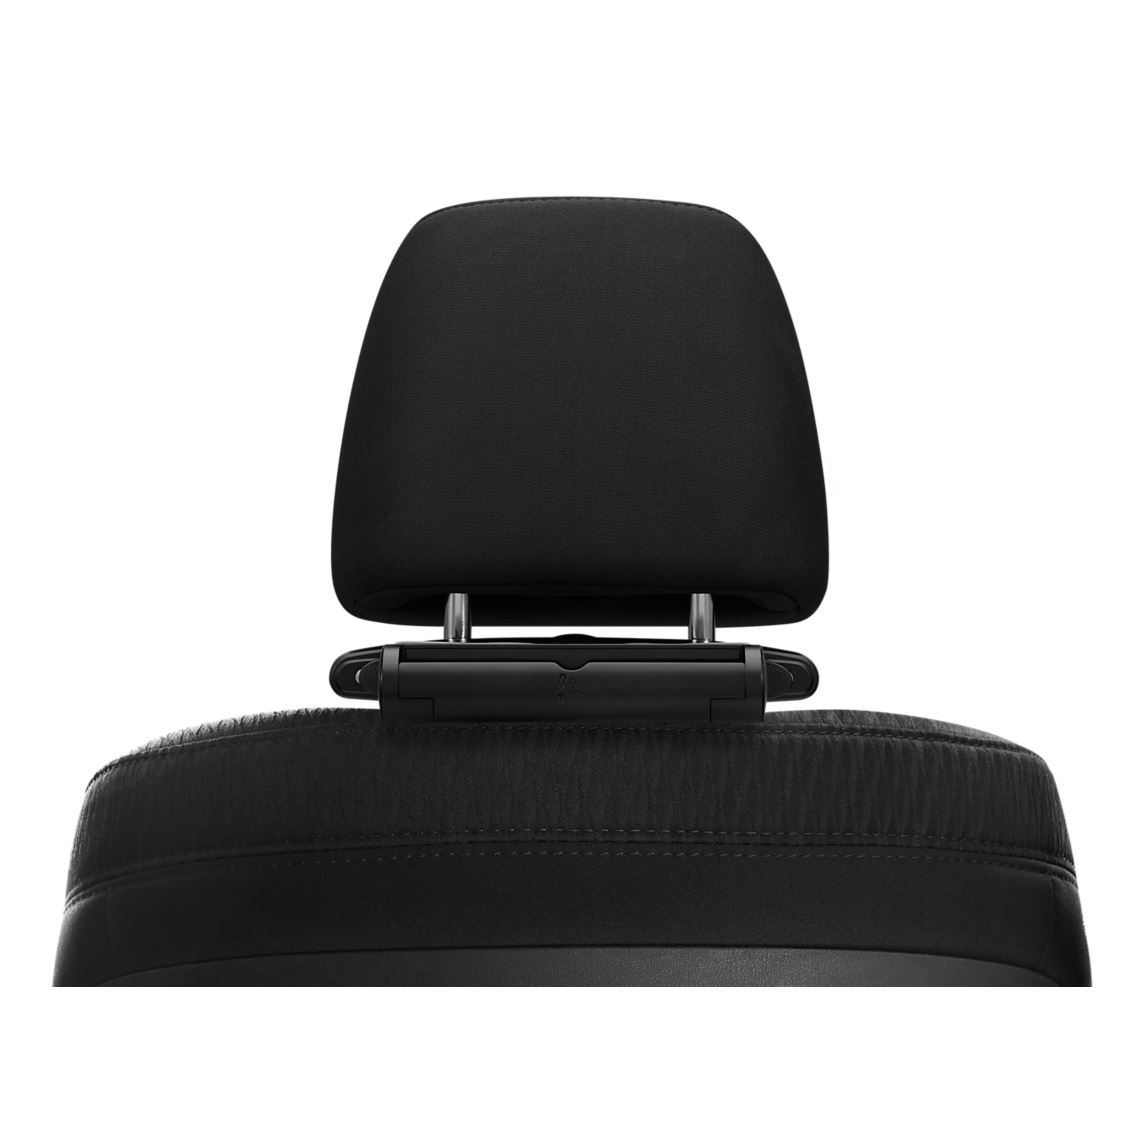 Picture of Felix RoadShow Car Stand for iPad